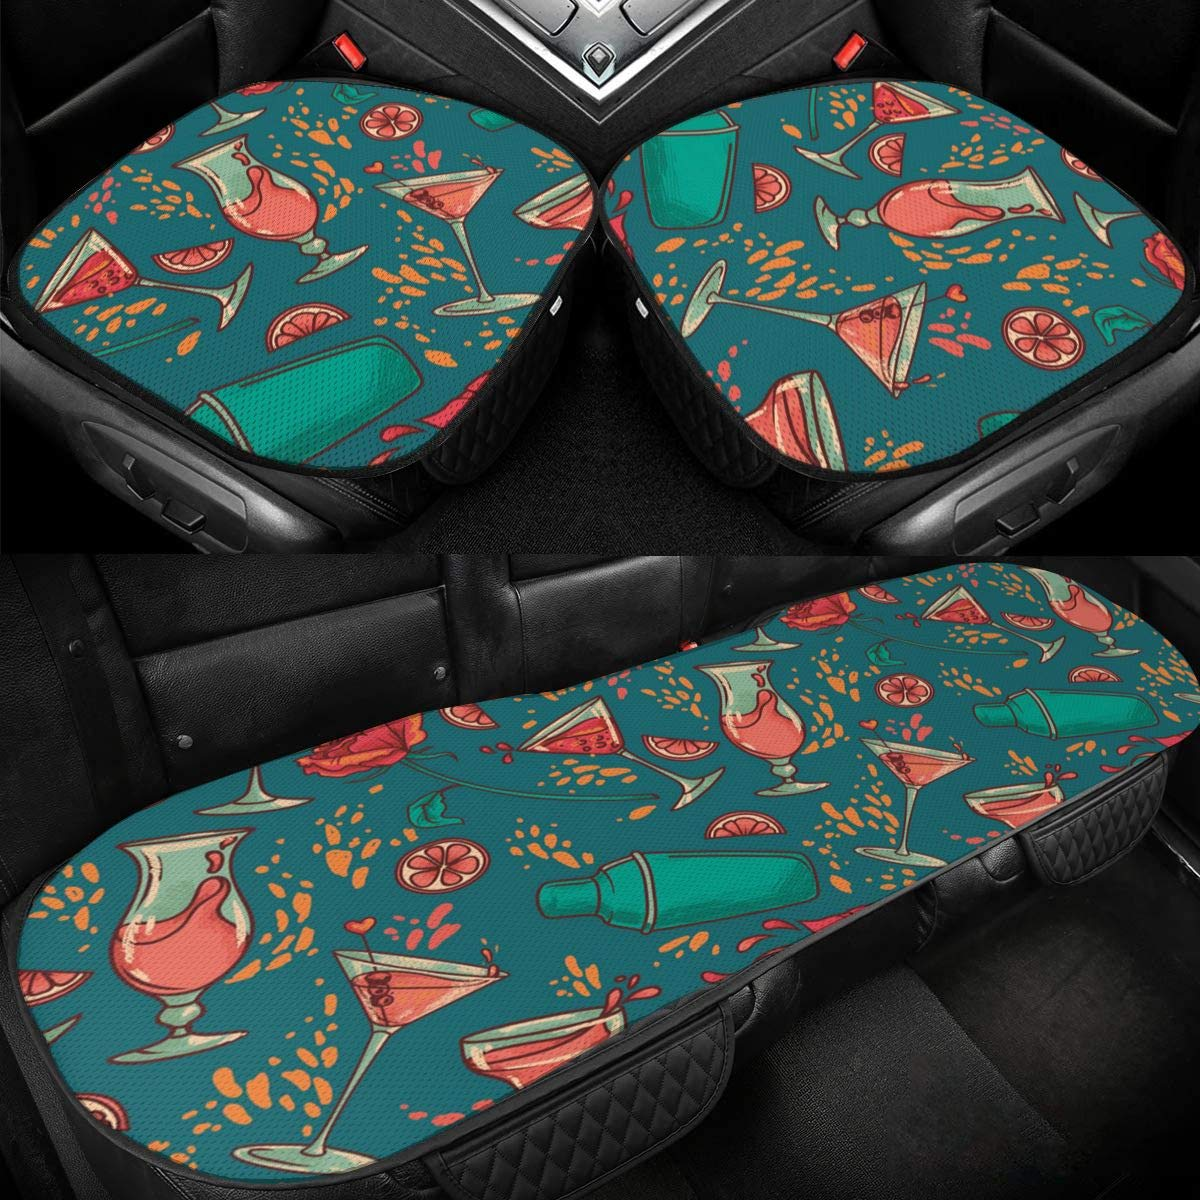 Juice Cup Car Ice Silk Seat Cushion Pad 3 Pieces Sets Comfort Seat Protector for Car Driver Seat Office Chair Home Use Seat Cushion